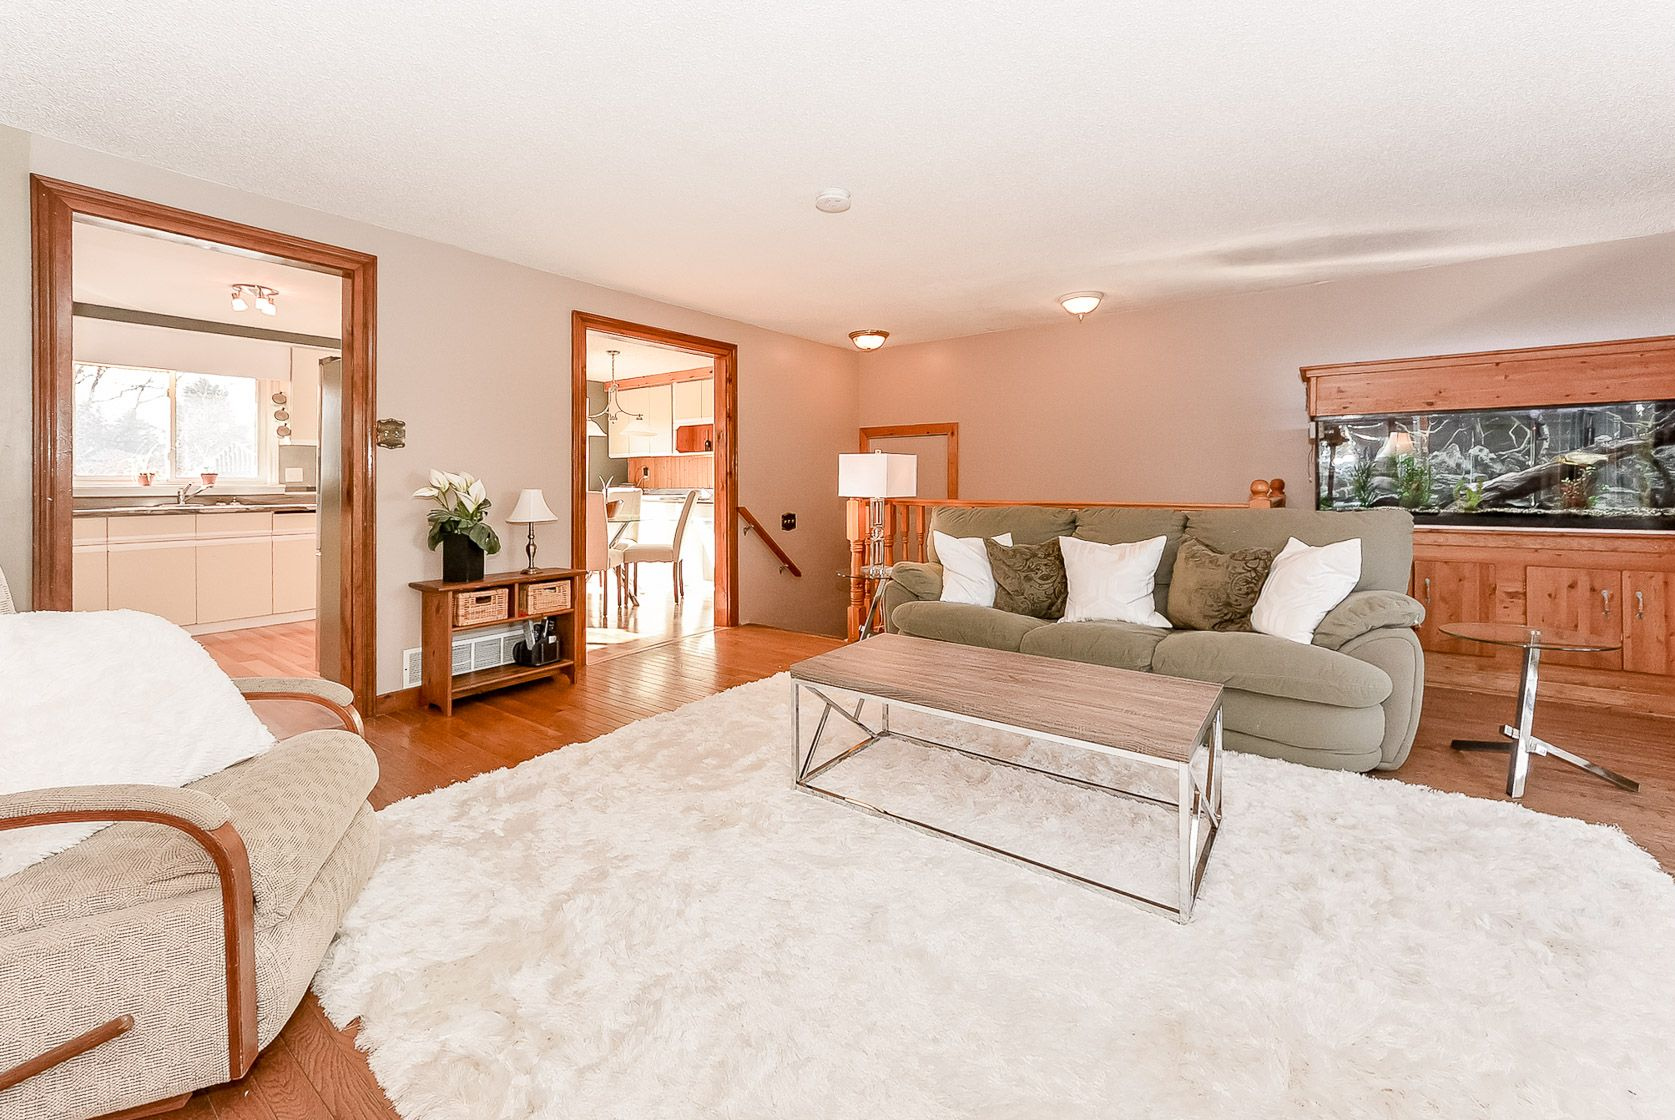 Great bedroom family home on large lot over sqft of living